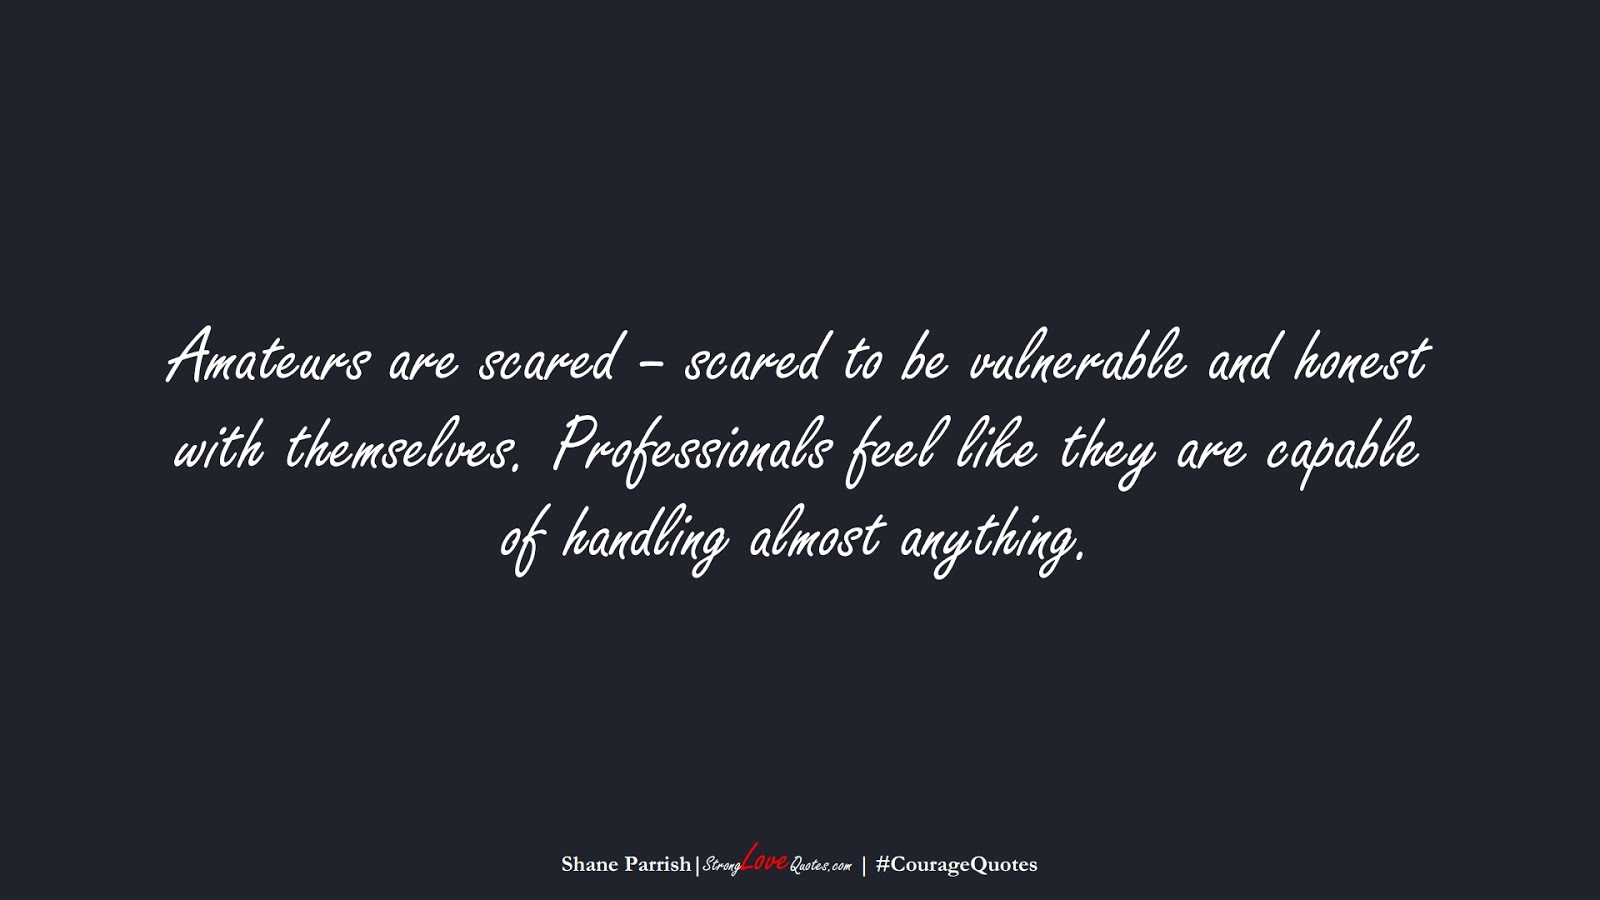 Amateurs are scared – scared to be vulnerable and honest with themselves. Professionals feel like they are capable of handling almost anything. (Shane Parrish);  #CourageQuotes